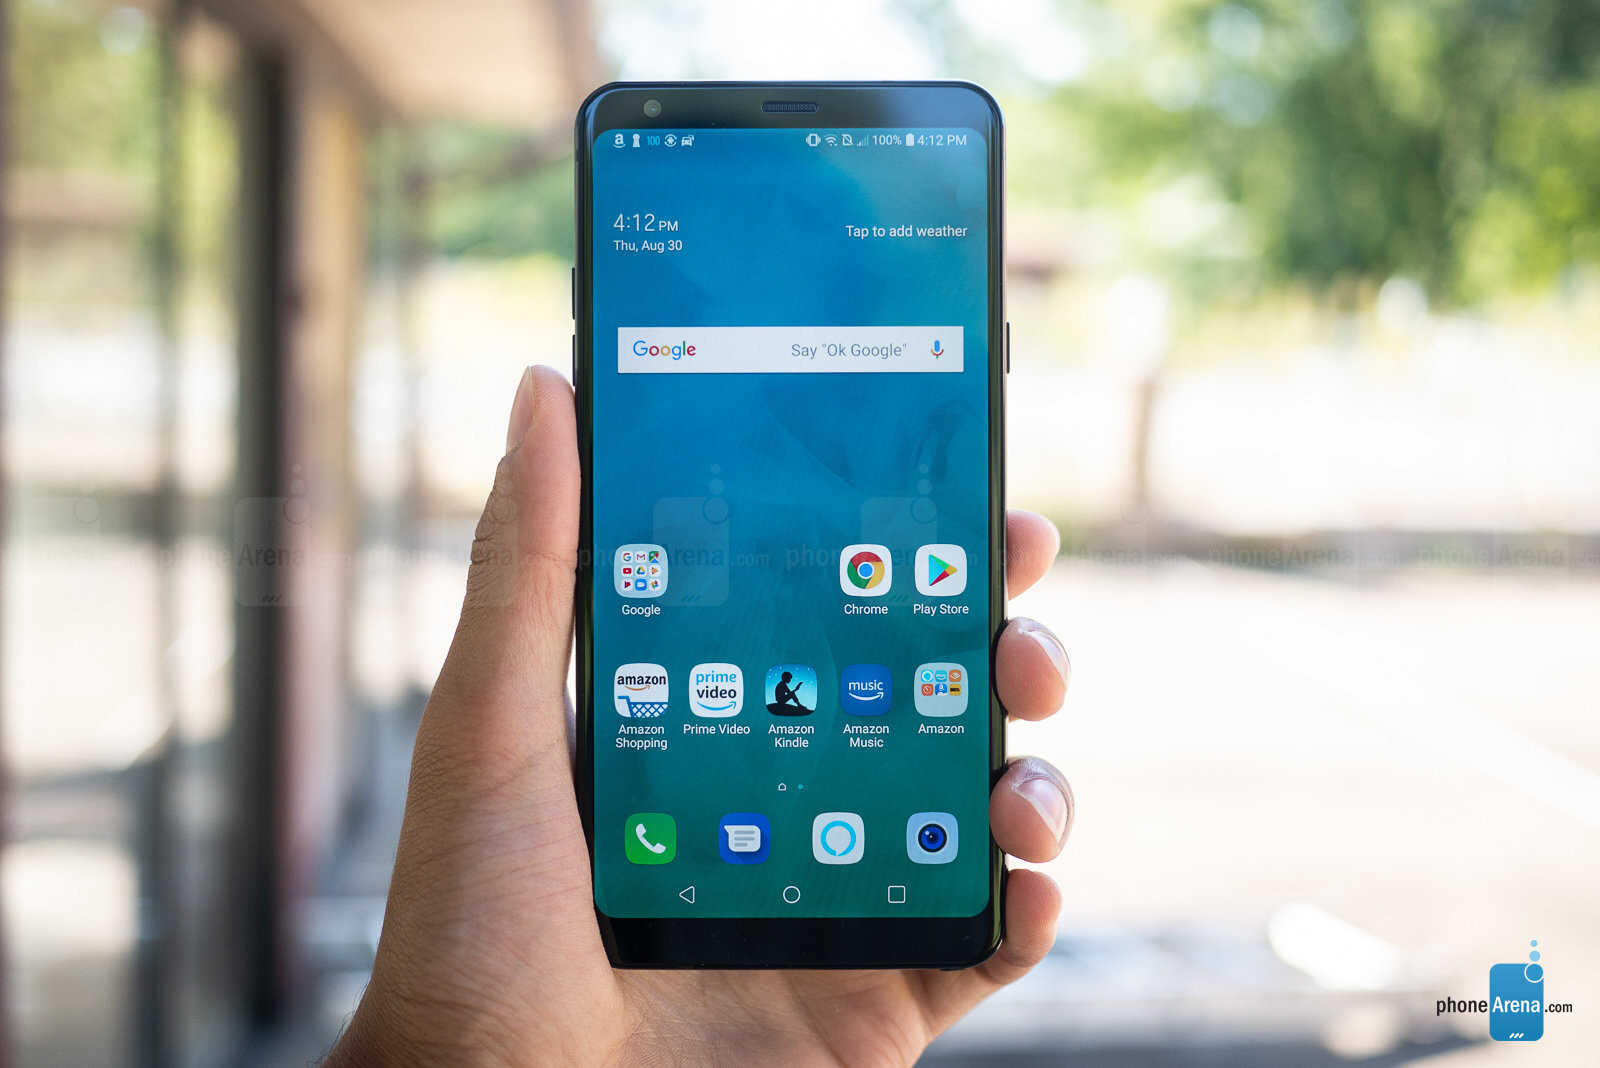 LG Stylo 4 Review - PhoneArena